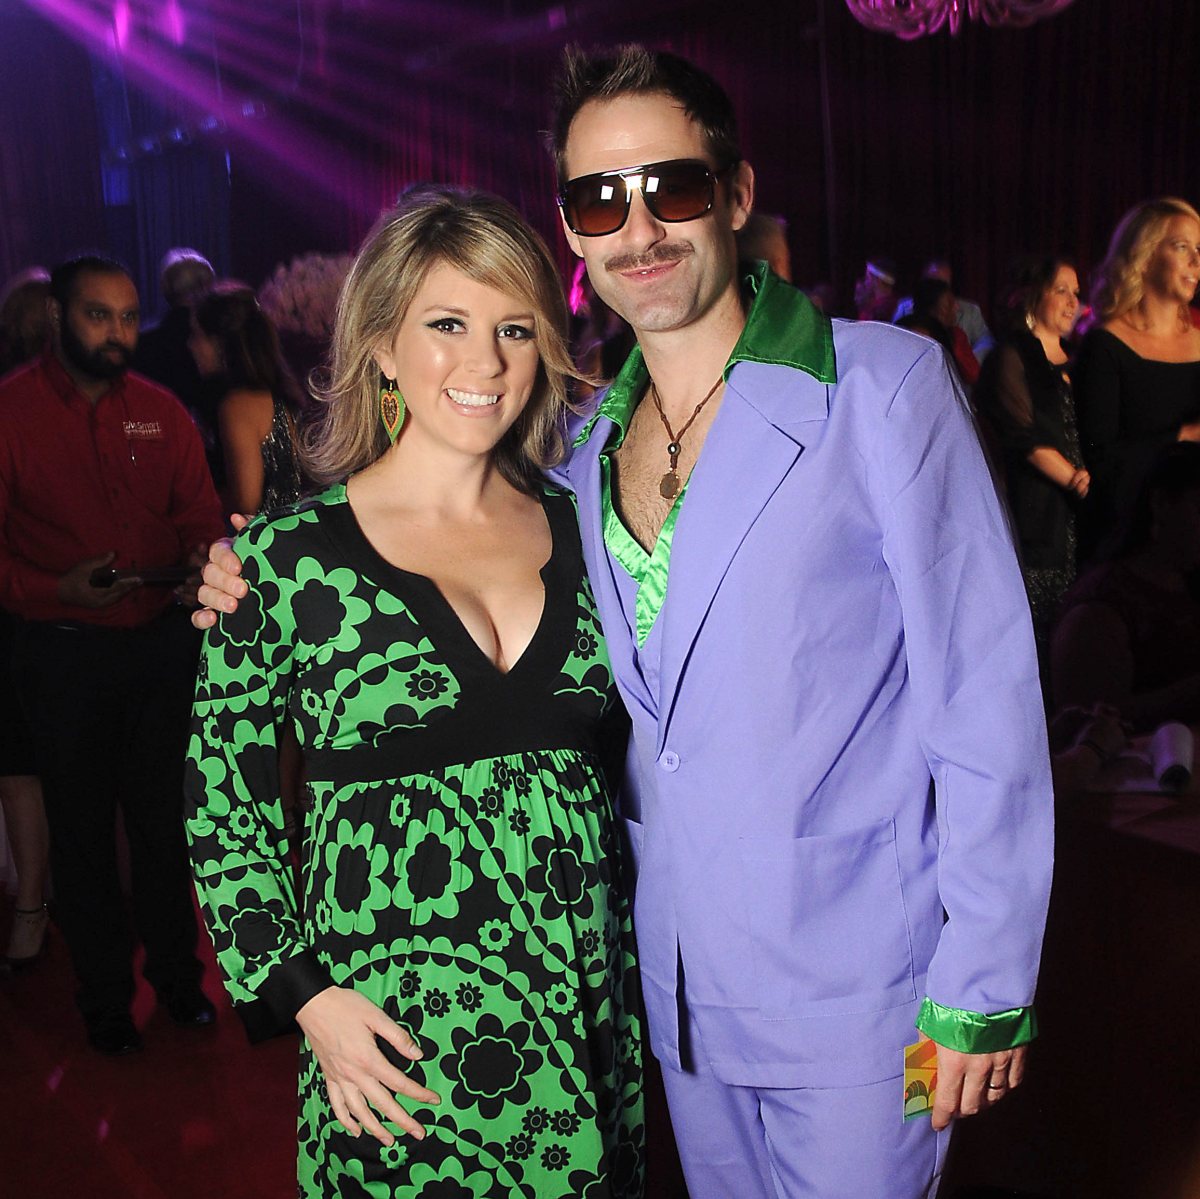 Valerie and Spencer Chase at the Alley Theatre Ball